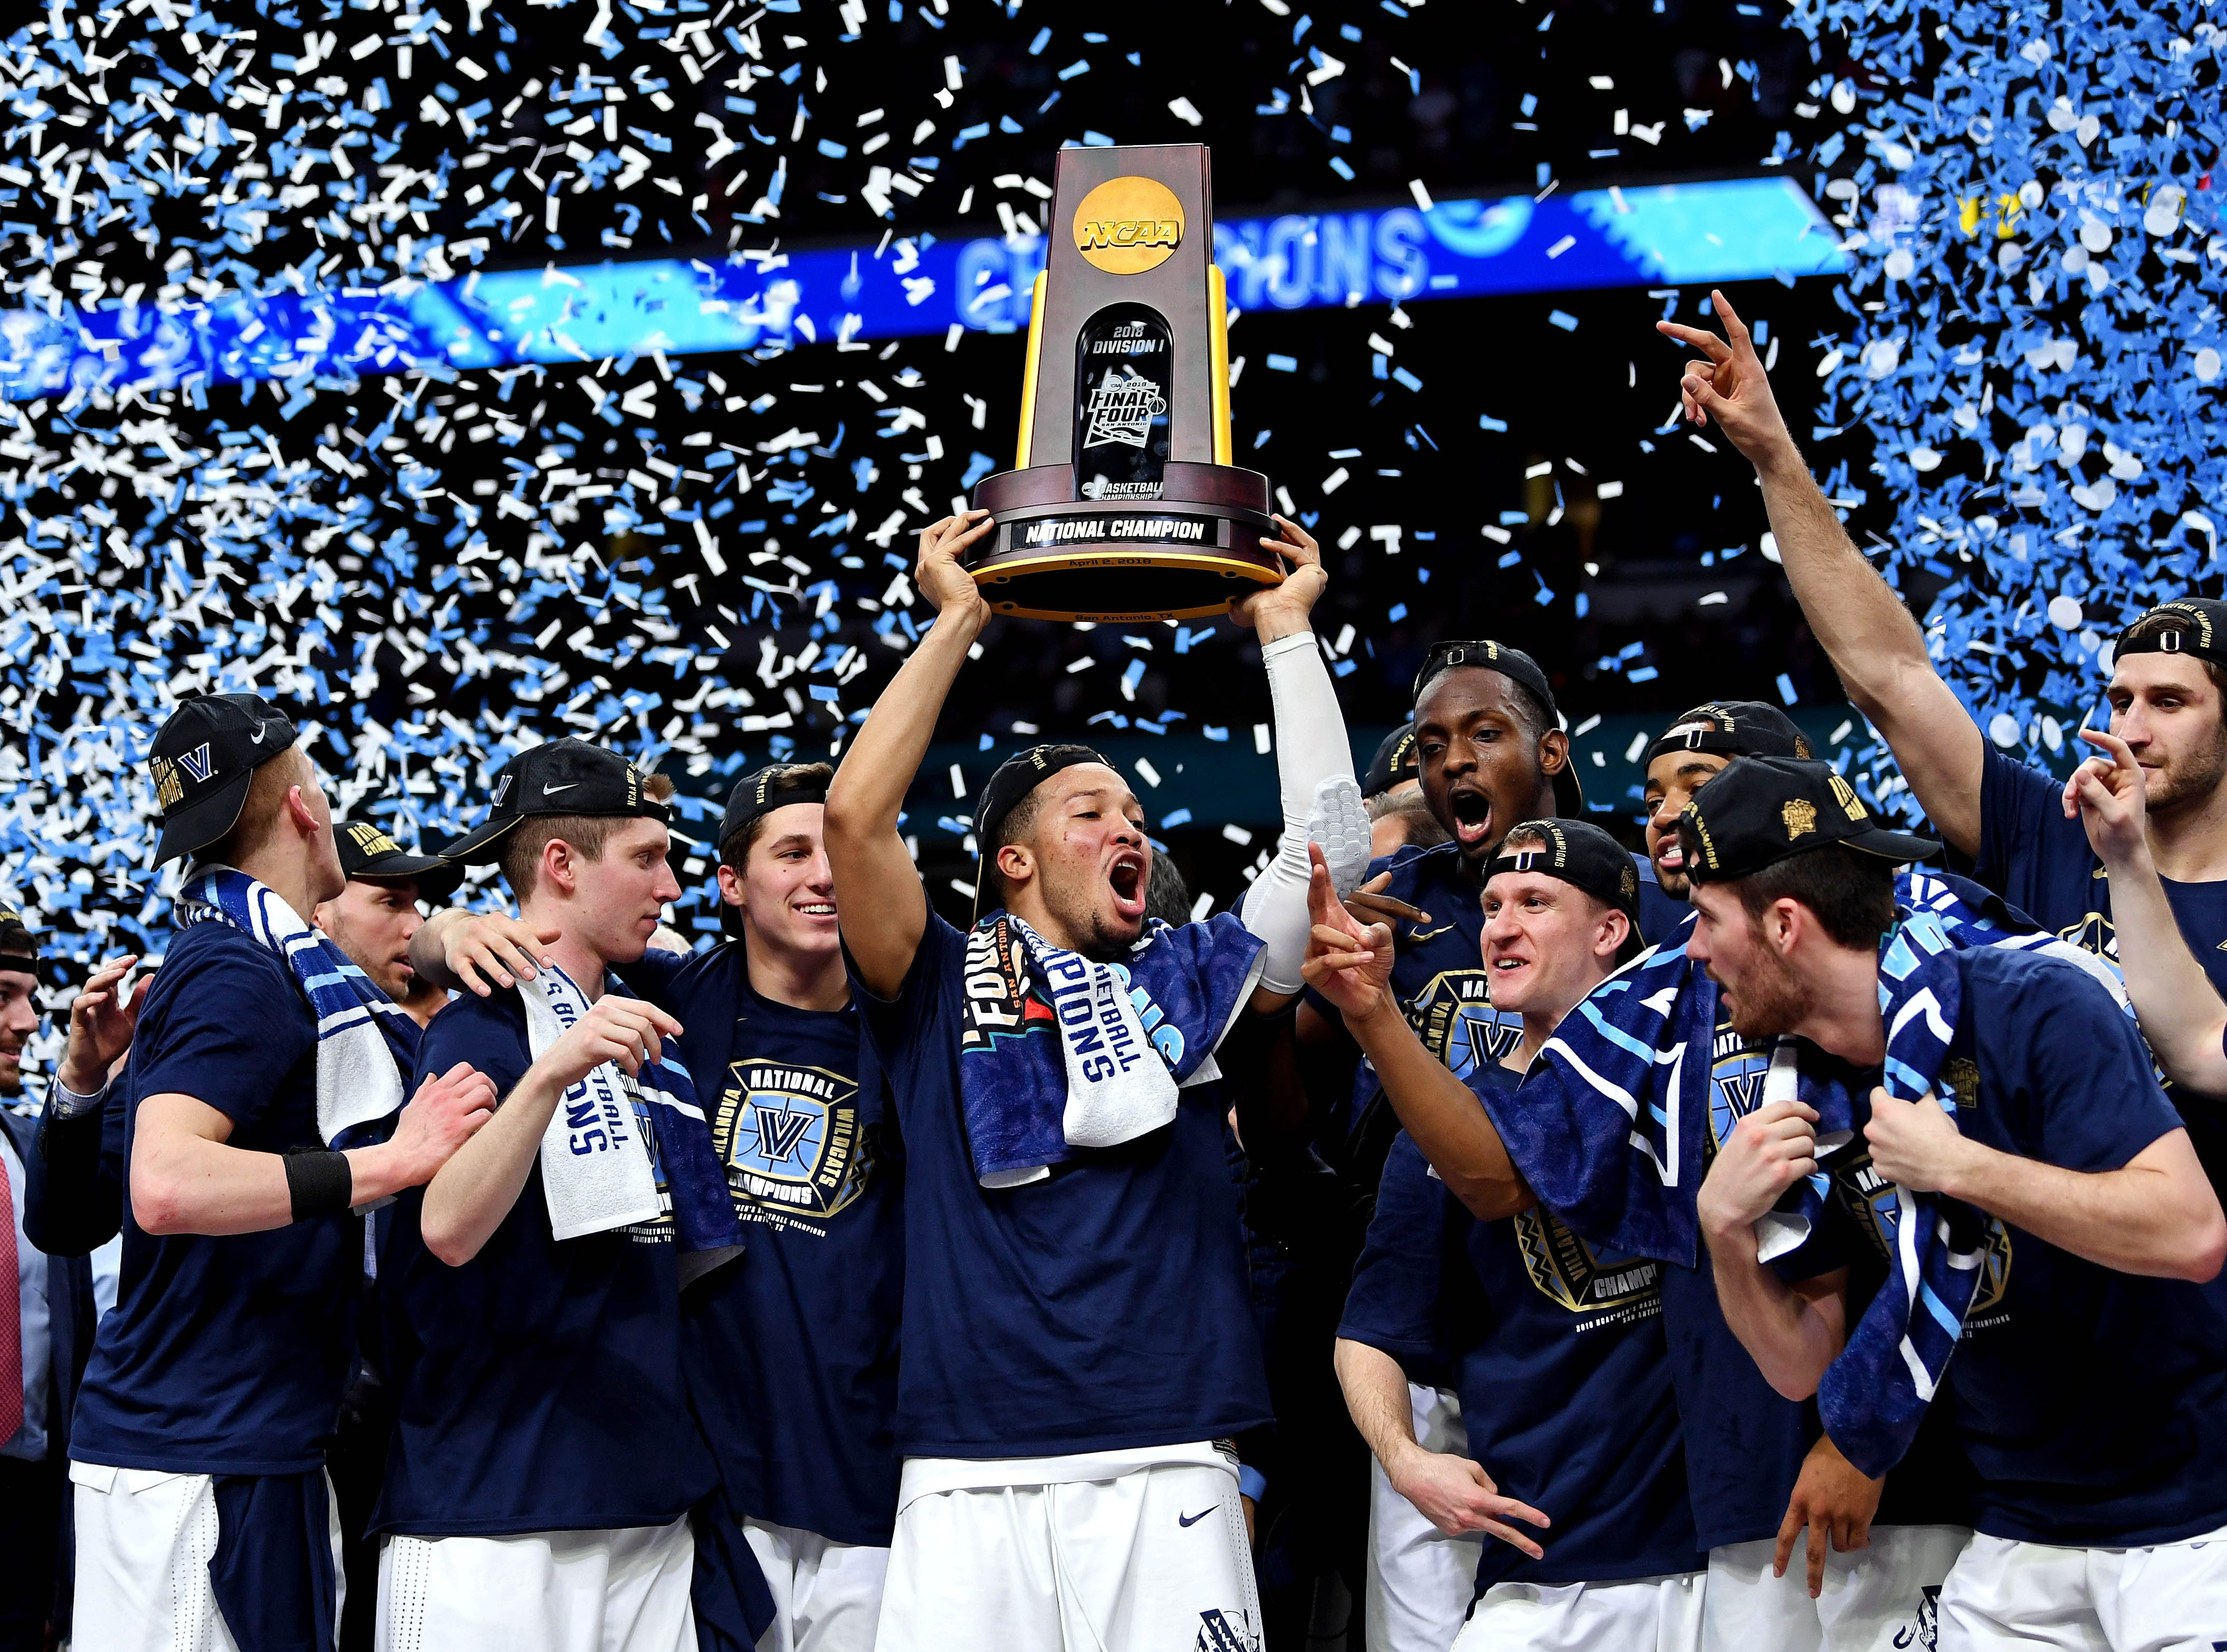 April 2, 2018: Villanova Wildcats guard Jalen Brunson celebrates with the National Championship trophy after beating the Michigan Wolverines in the championship game of the 2018 men's Final Four at the Alamodome in San Antonio, Texas.